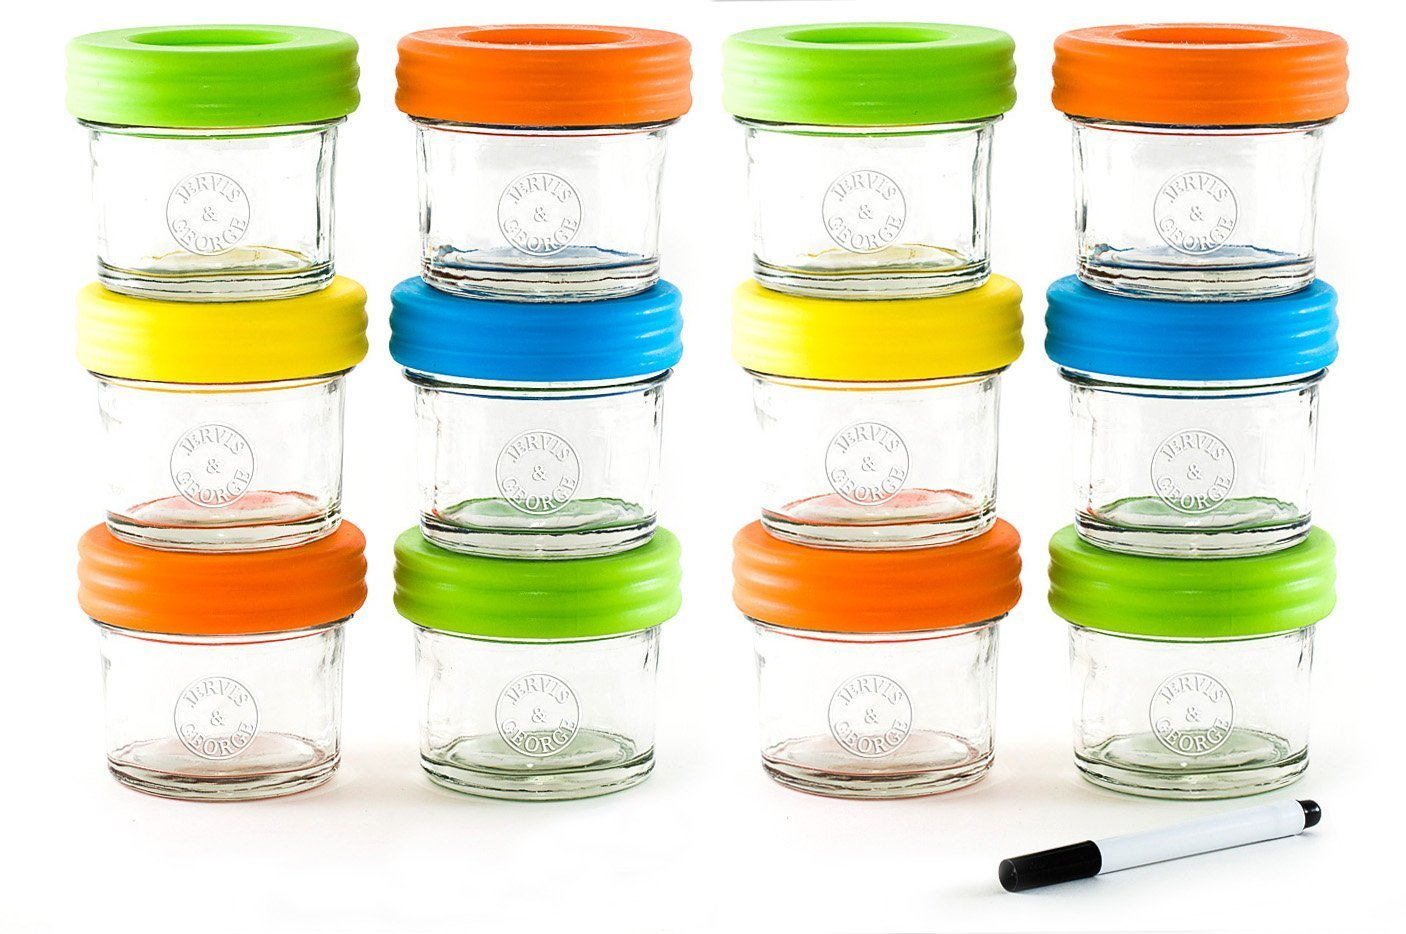 glass baby food storage containers set contains 12 small reusable 4oz jars ebay. Black Bedroom Furniture Sets. Home Design Ideas